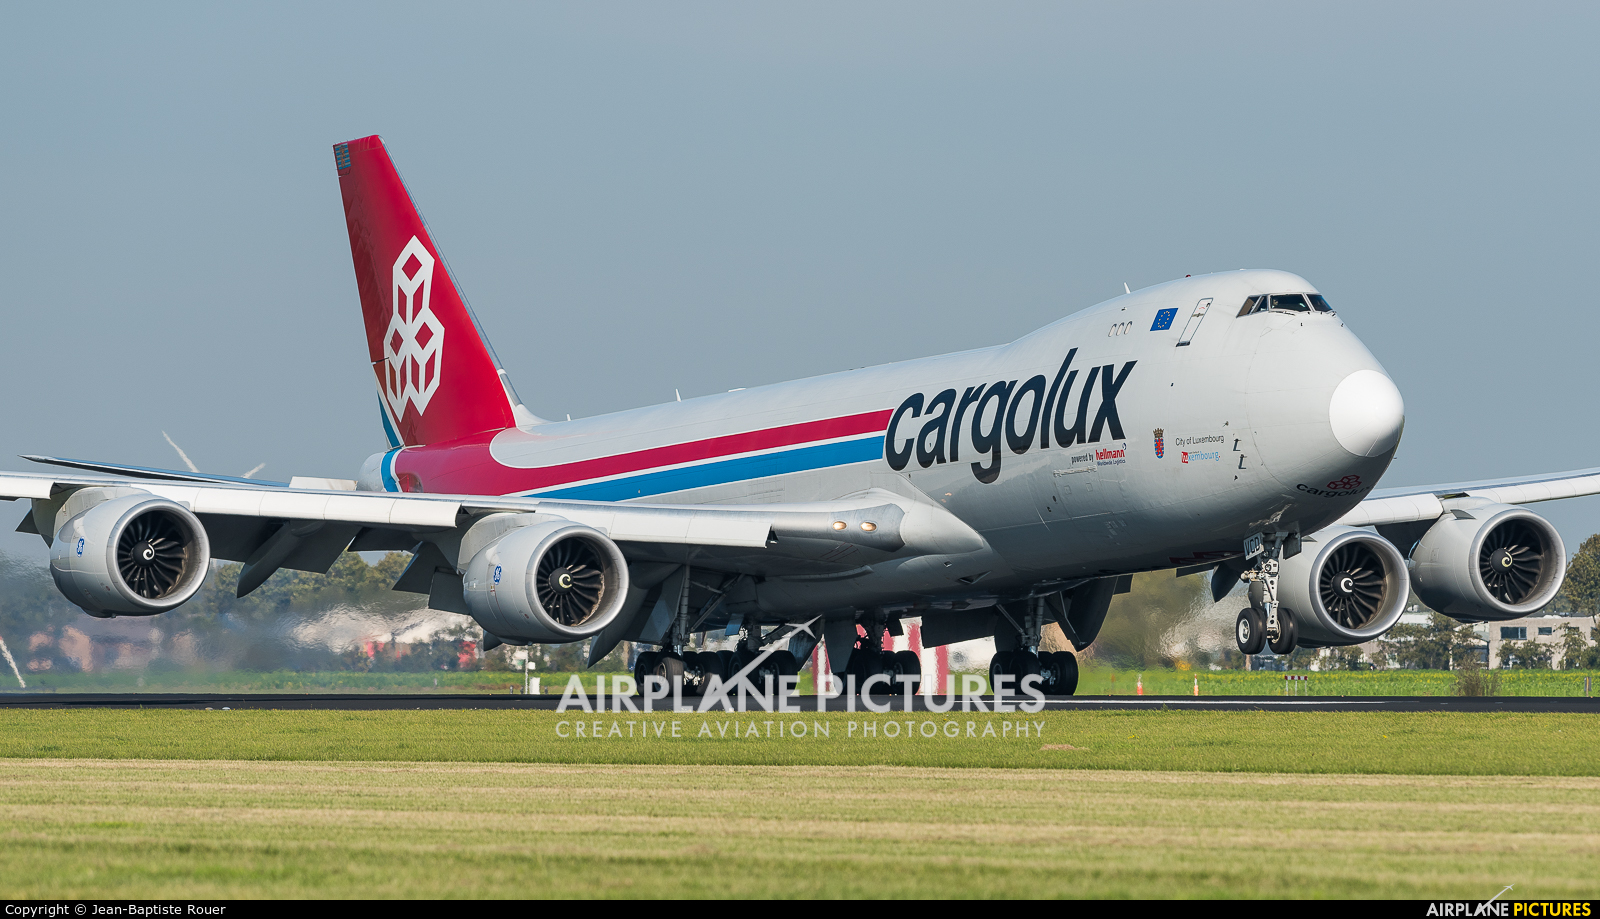 Cargolux LX-VCD aircraft at Amsterdam - Schiphol